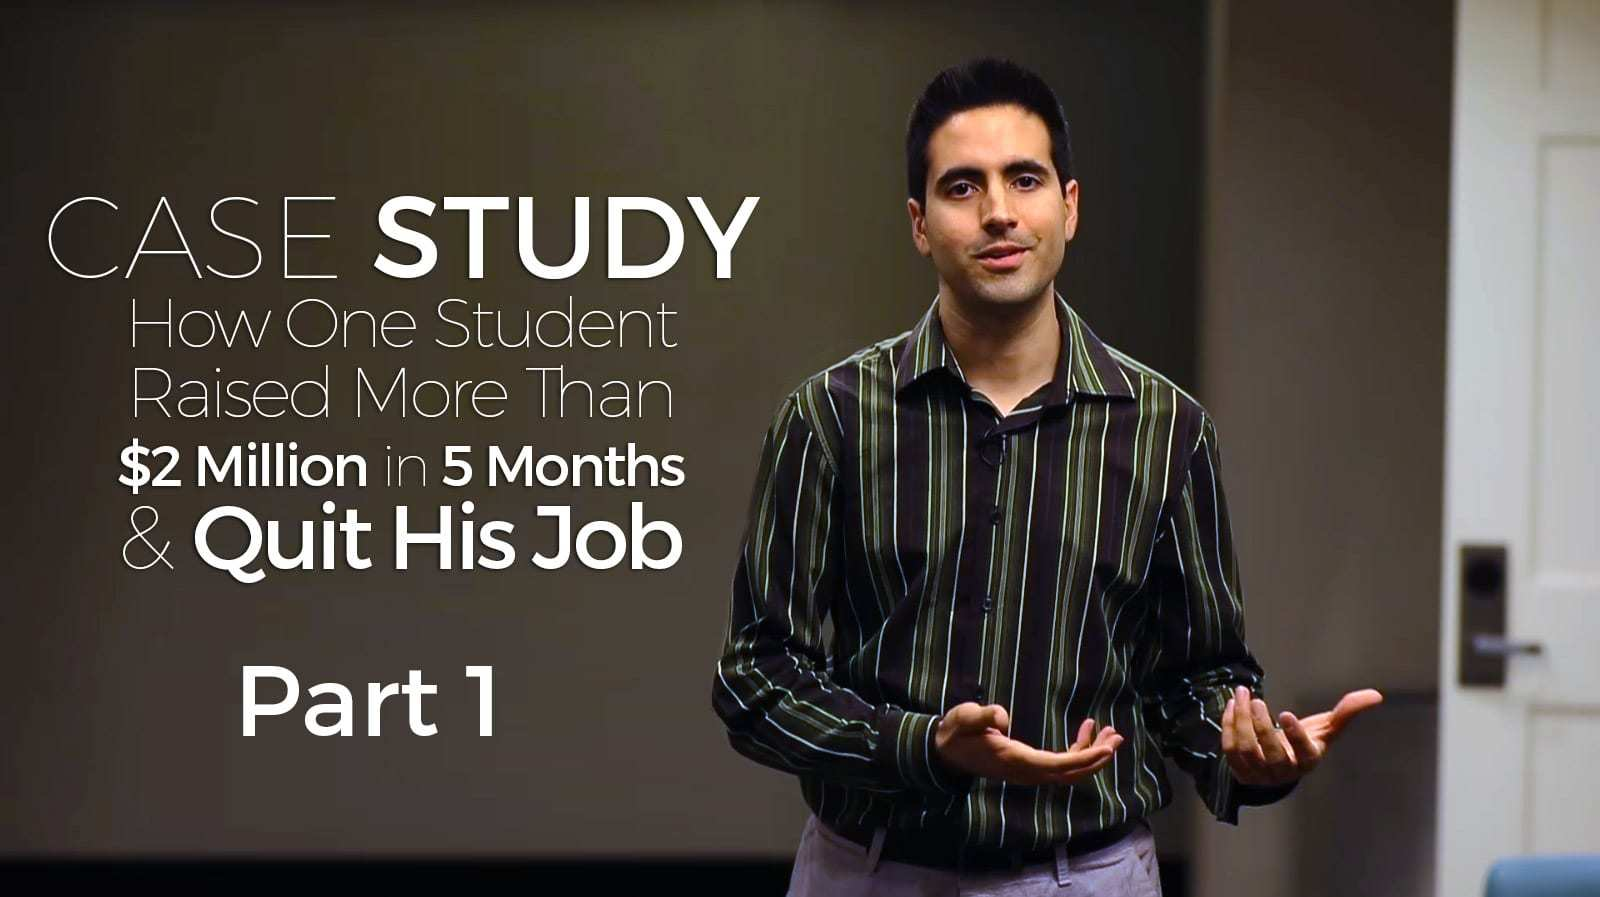 How One Student Raised More Than $2M in 5 Months and Quit His Job!